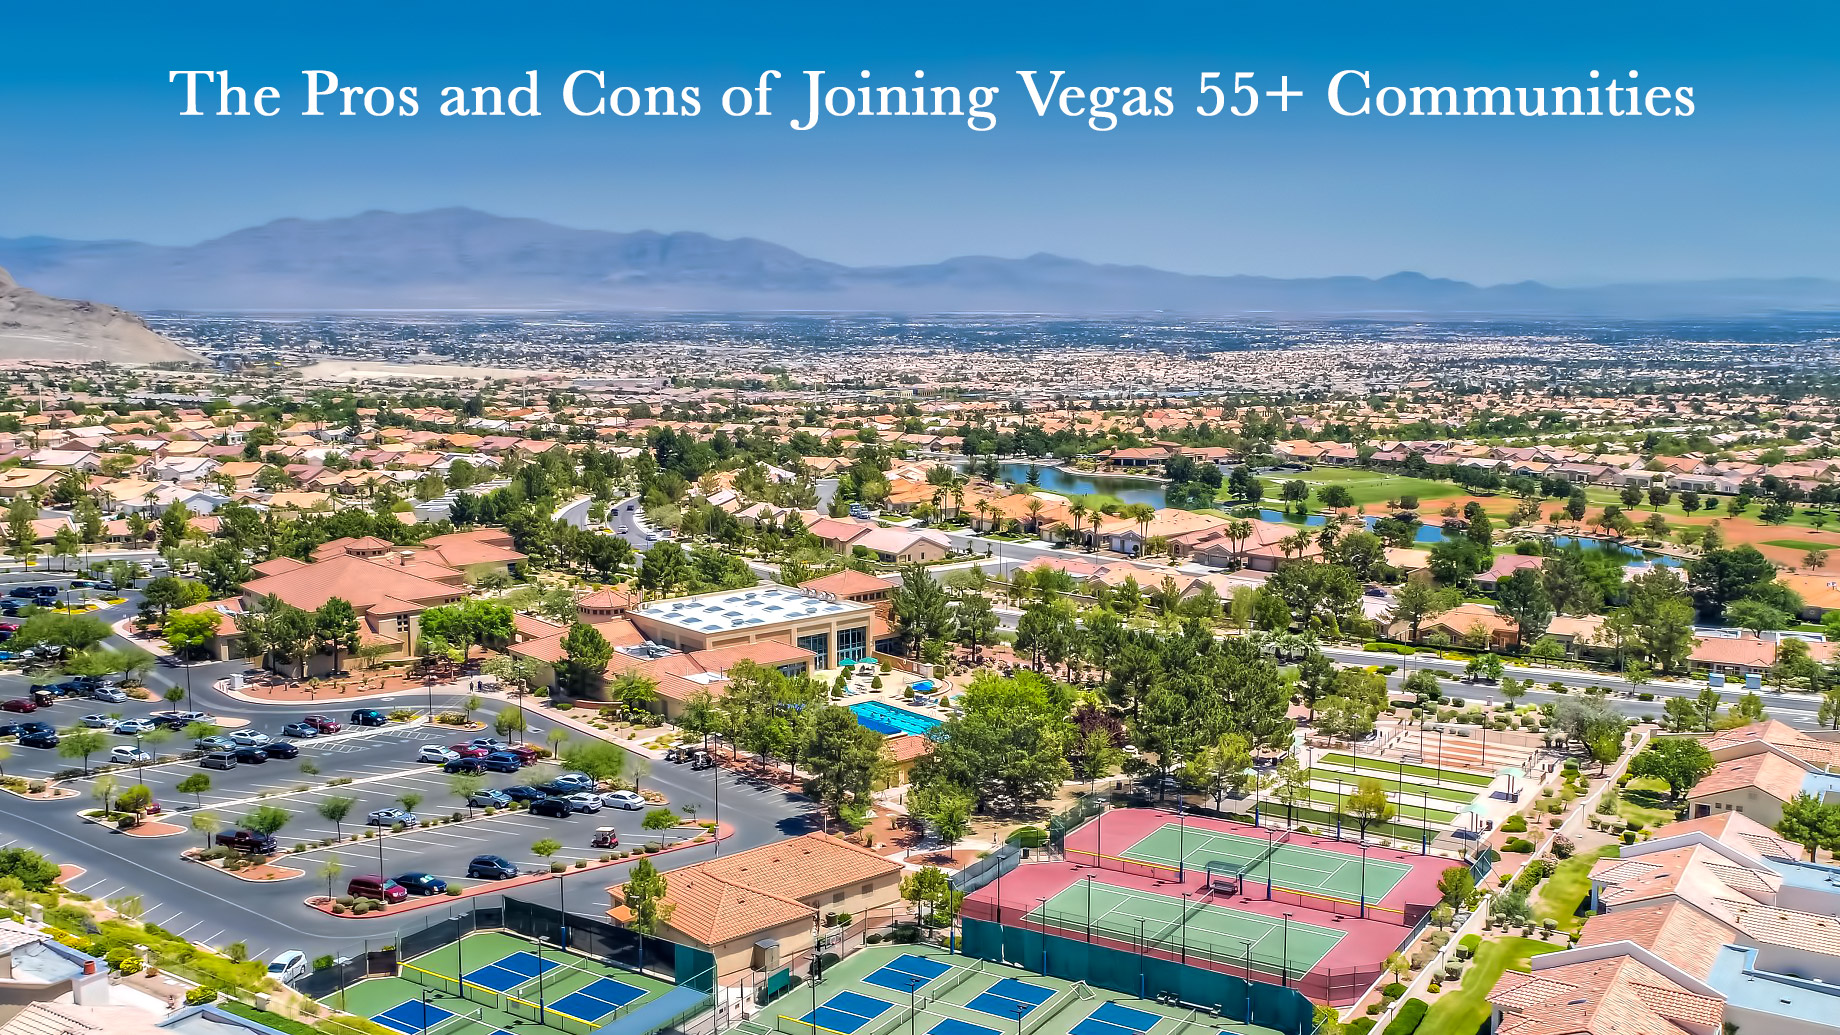 The Pros and Cons of Joining Vegas 55+ Communities